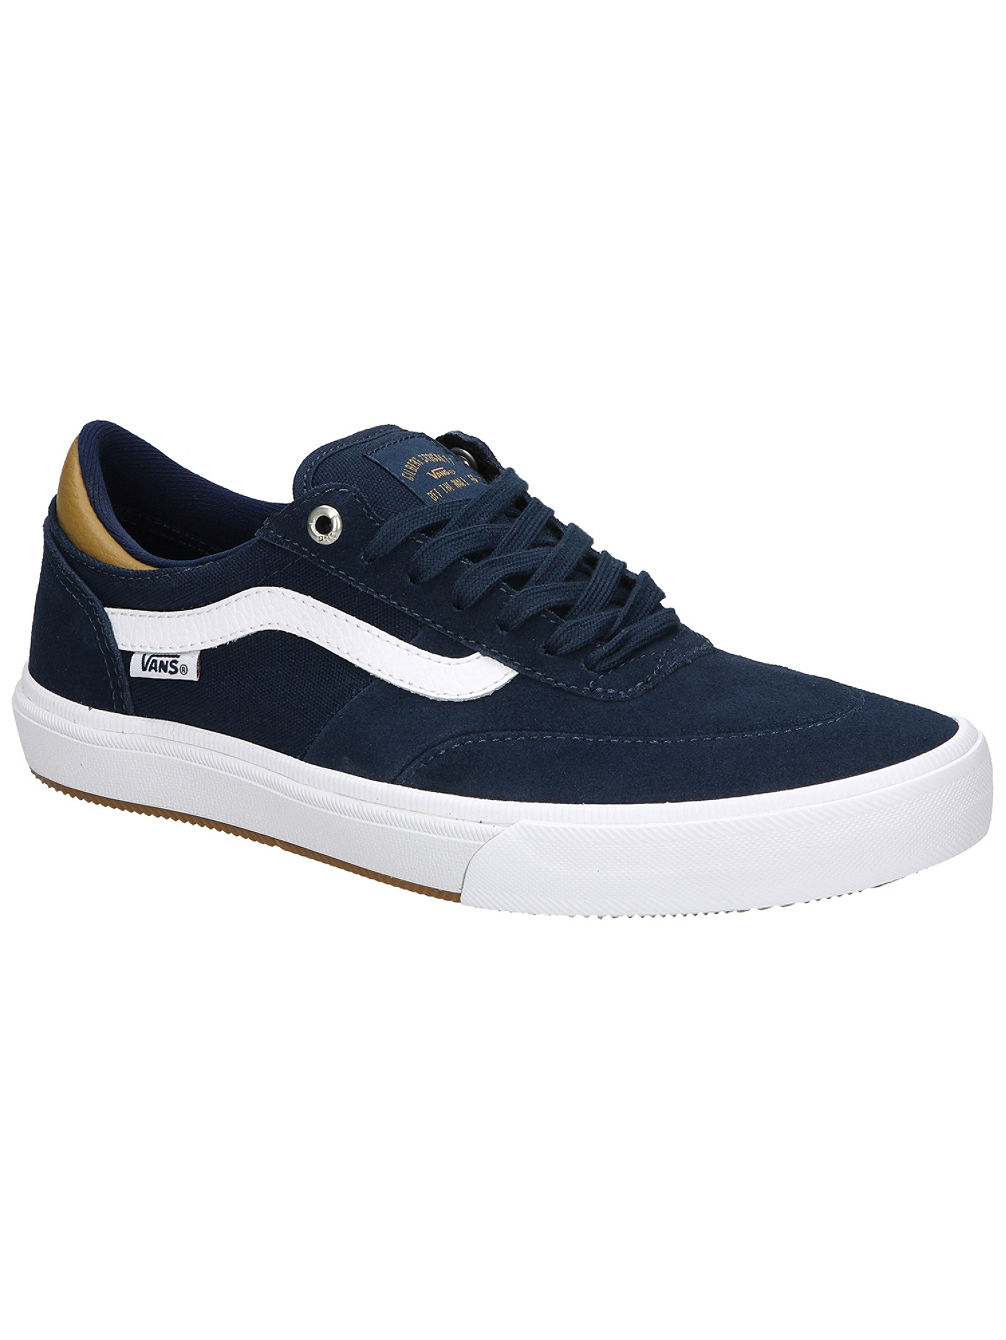 Where To Buy Skate Shoes Online Uk